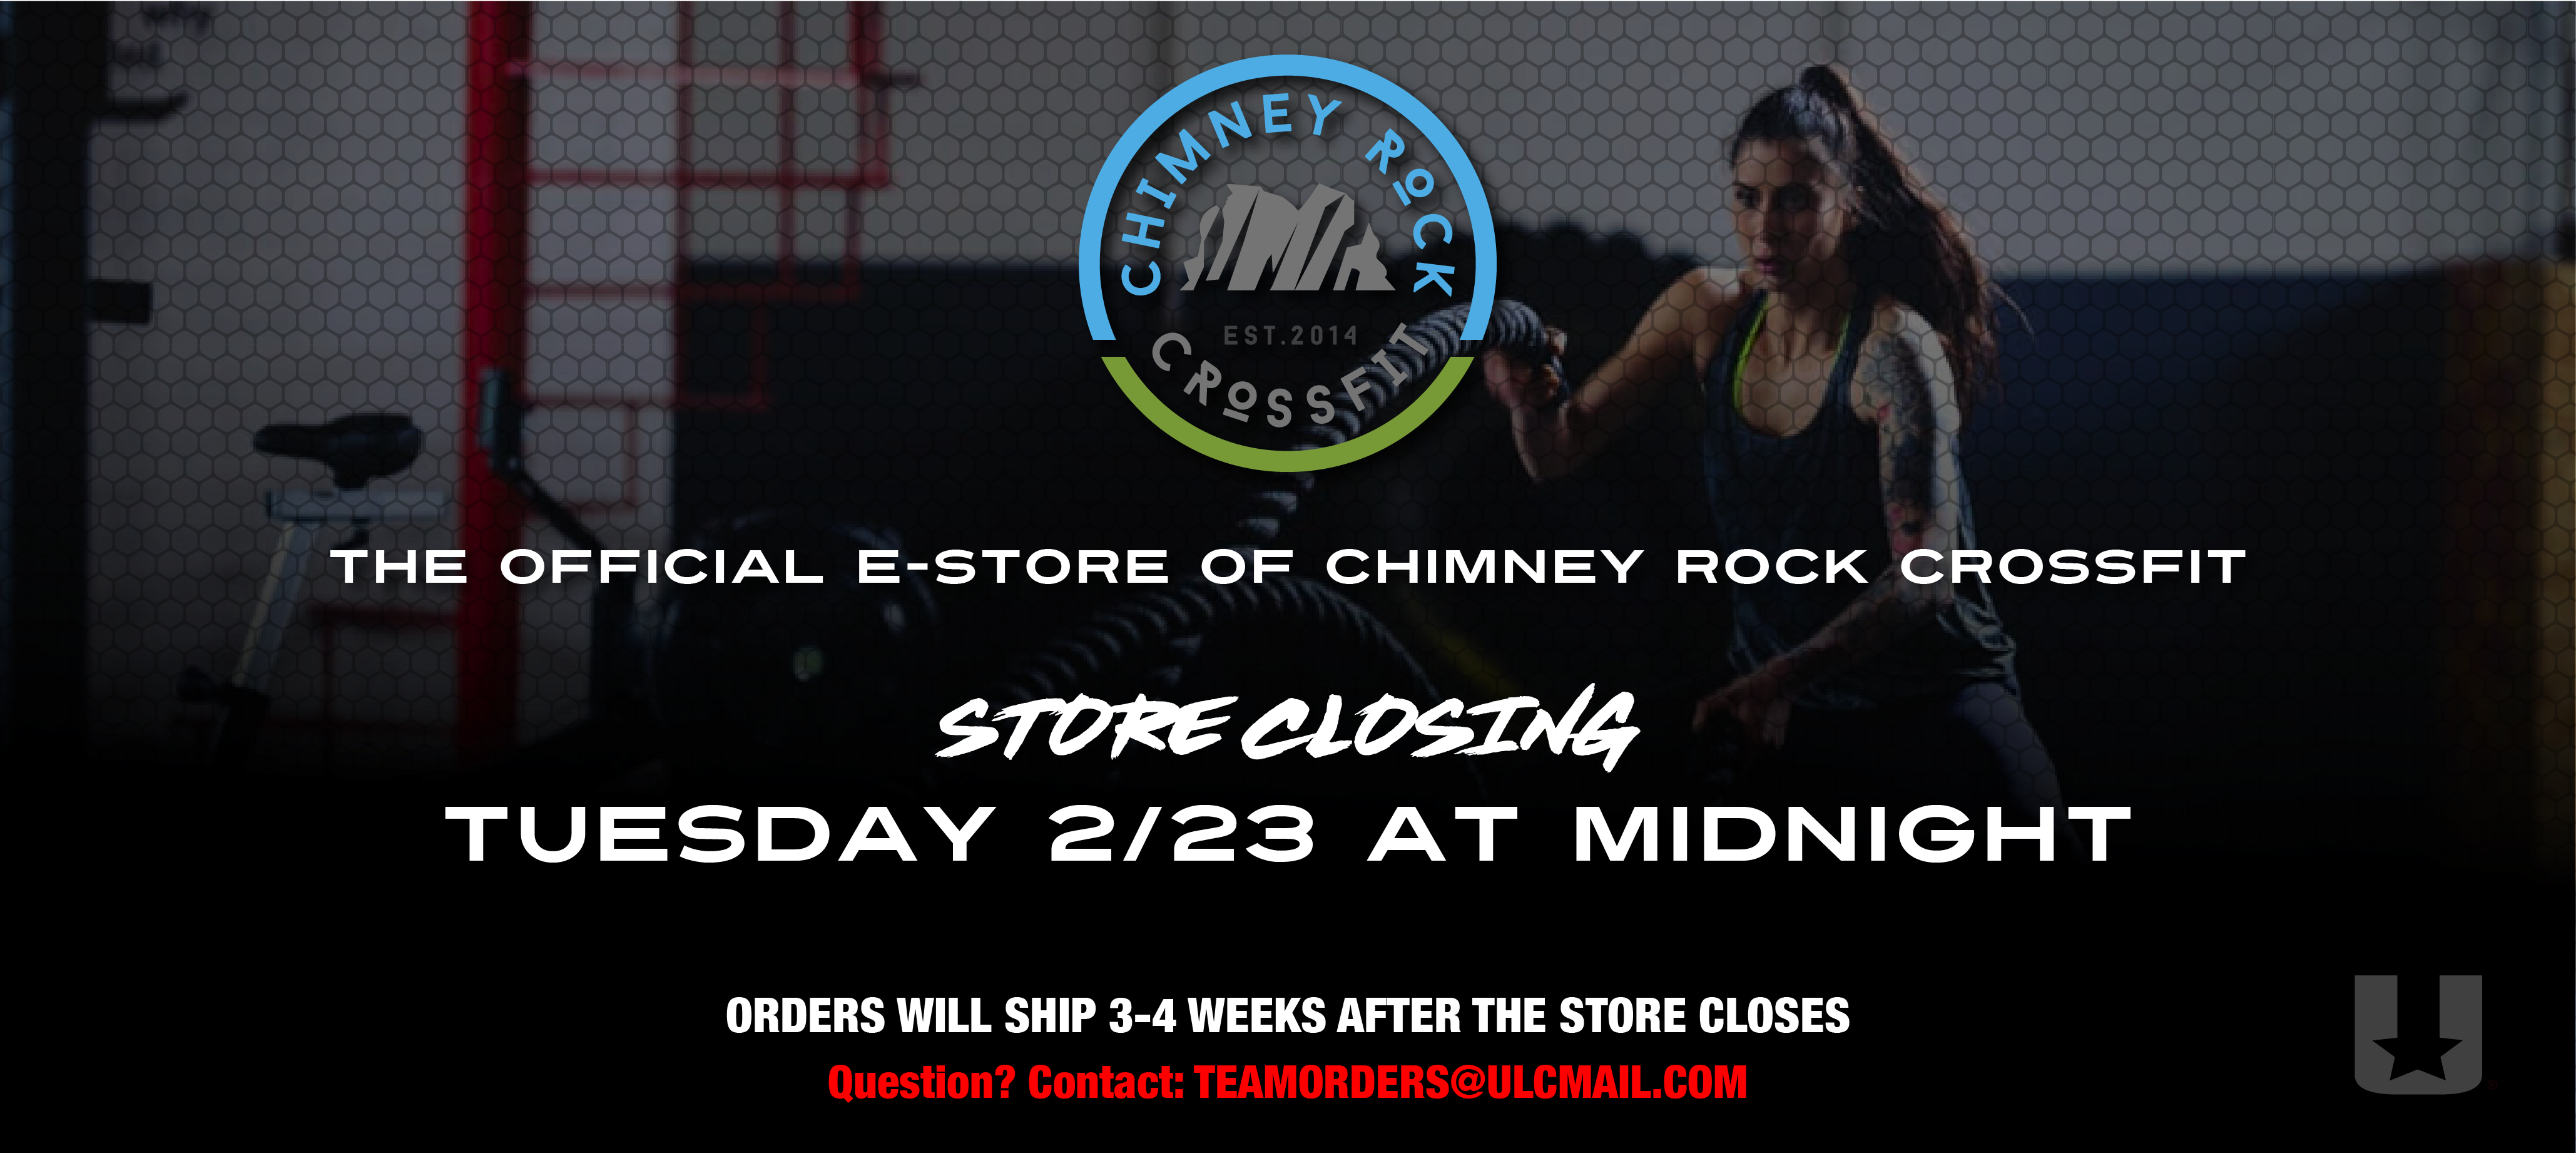 Chimney Rock Crossfit